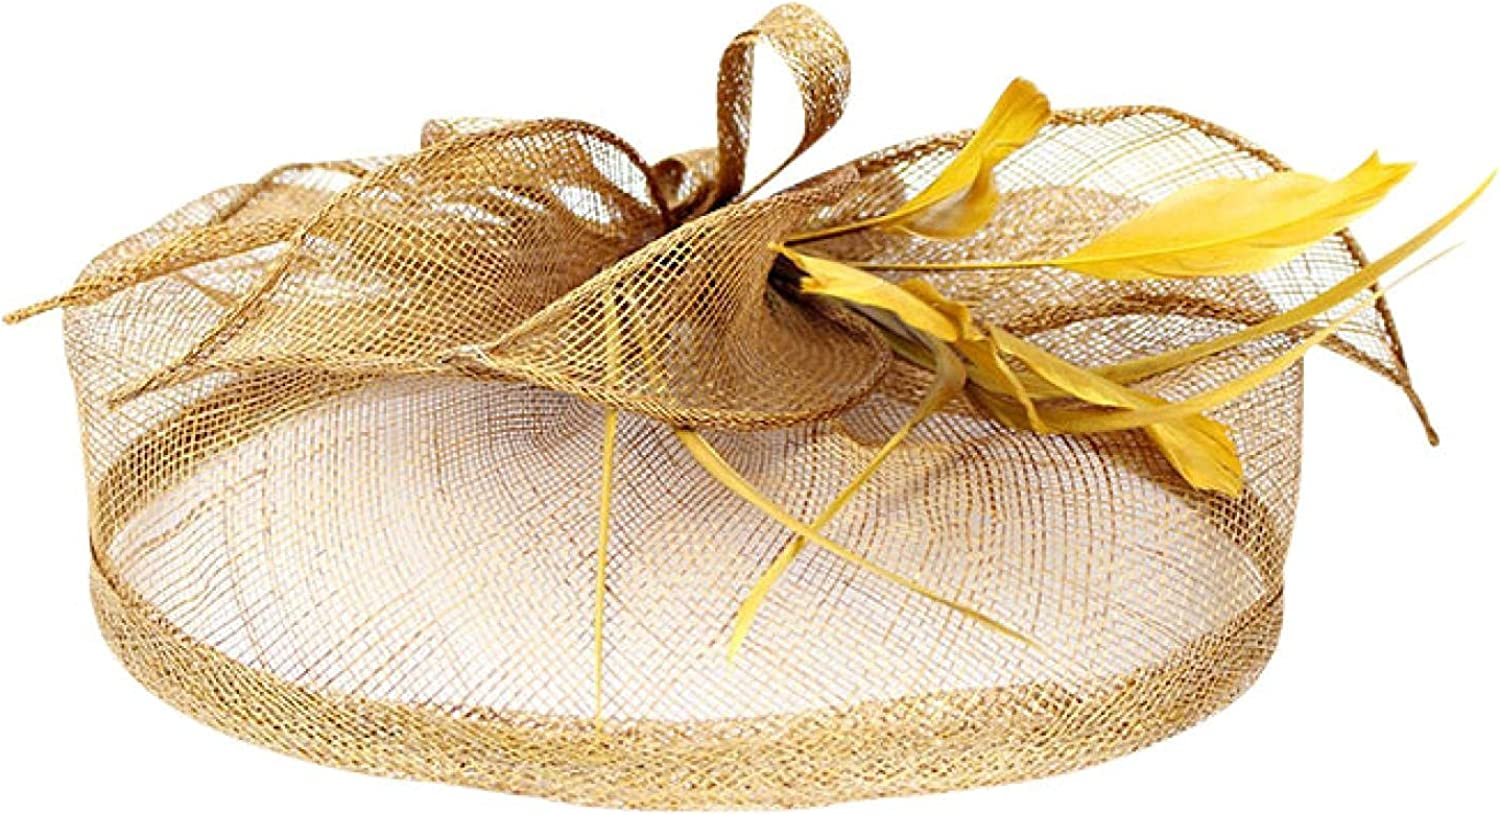 Xiangdanful Hats Suitable for Ladies Girls Cocktail Party Kentucky Wedding Hats